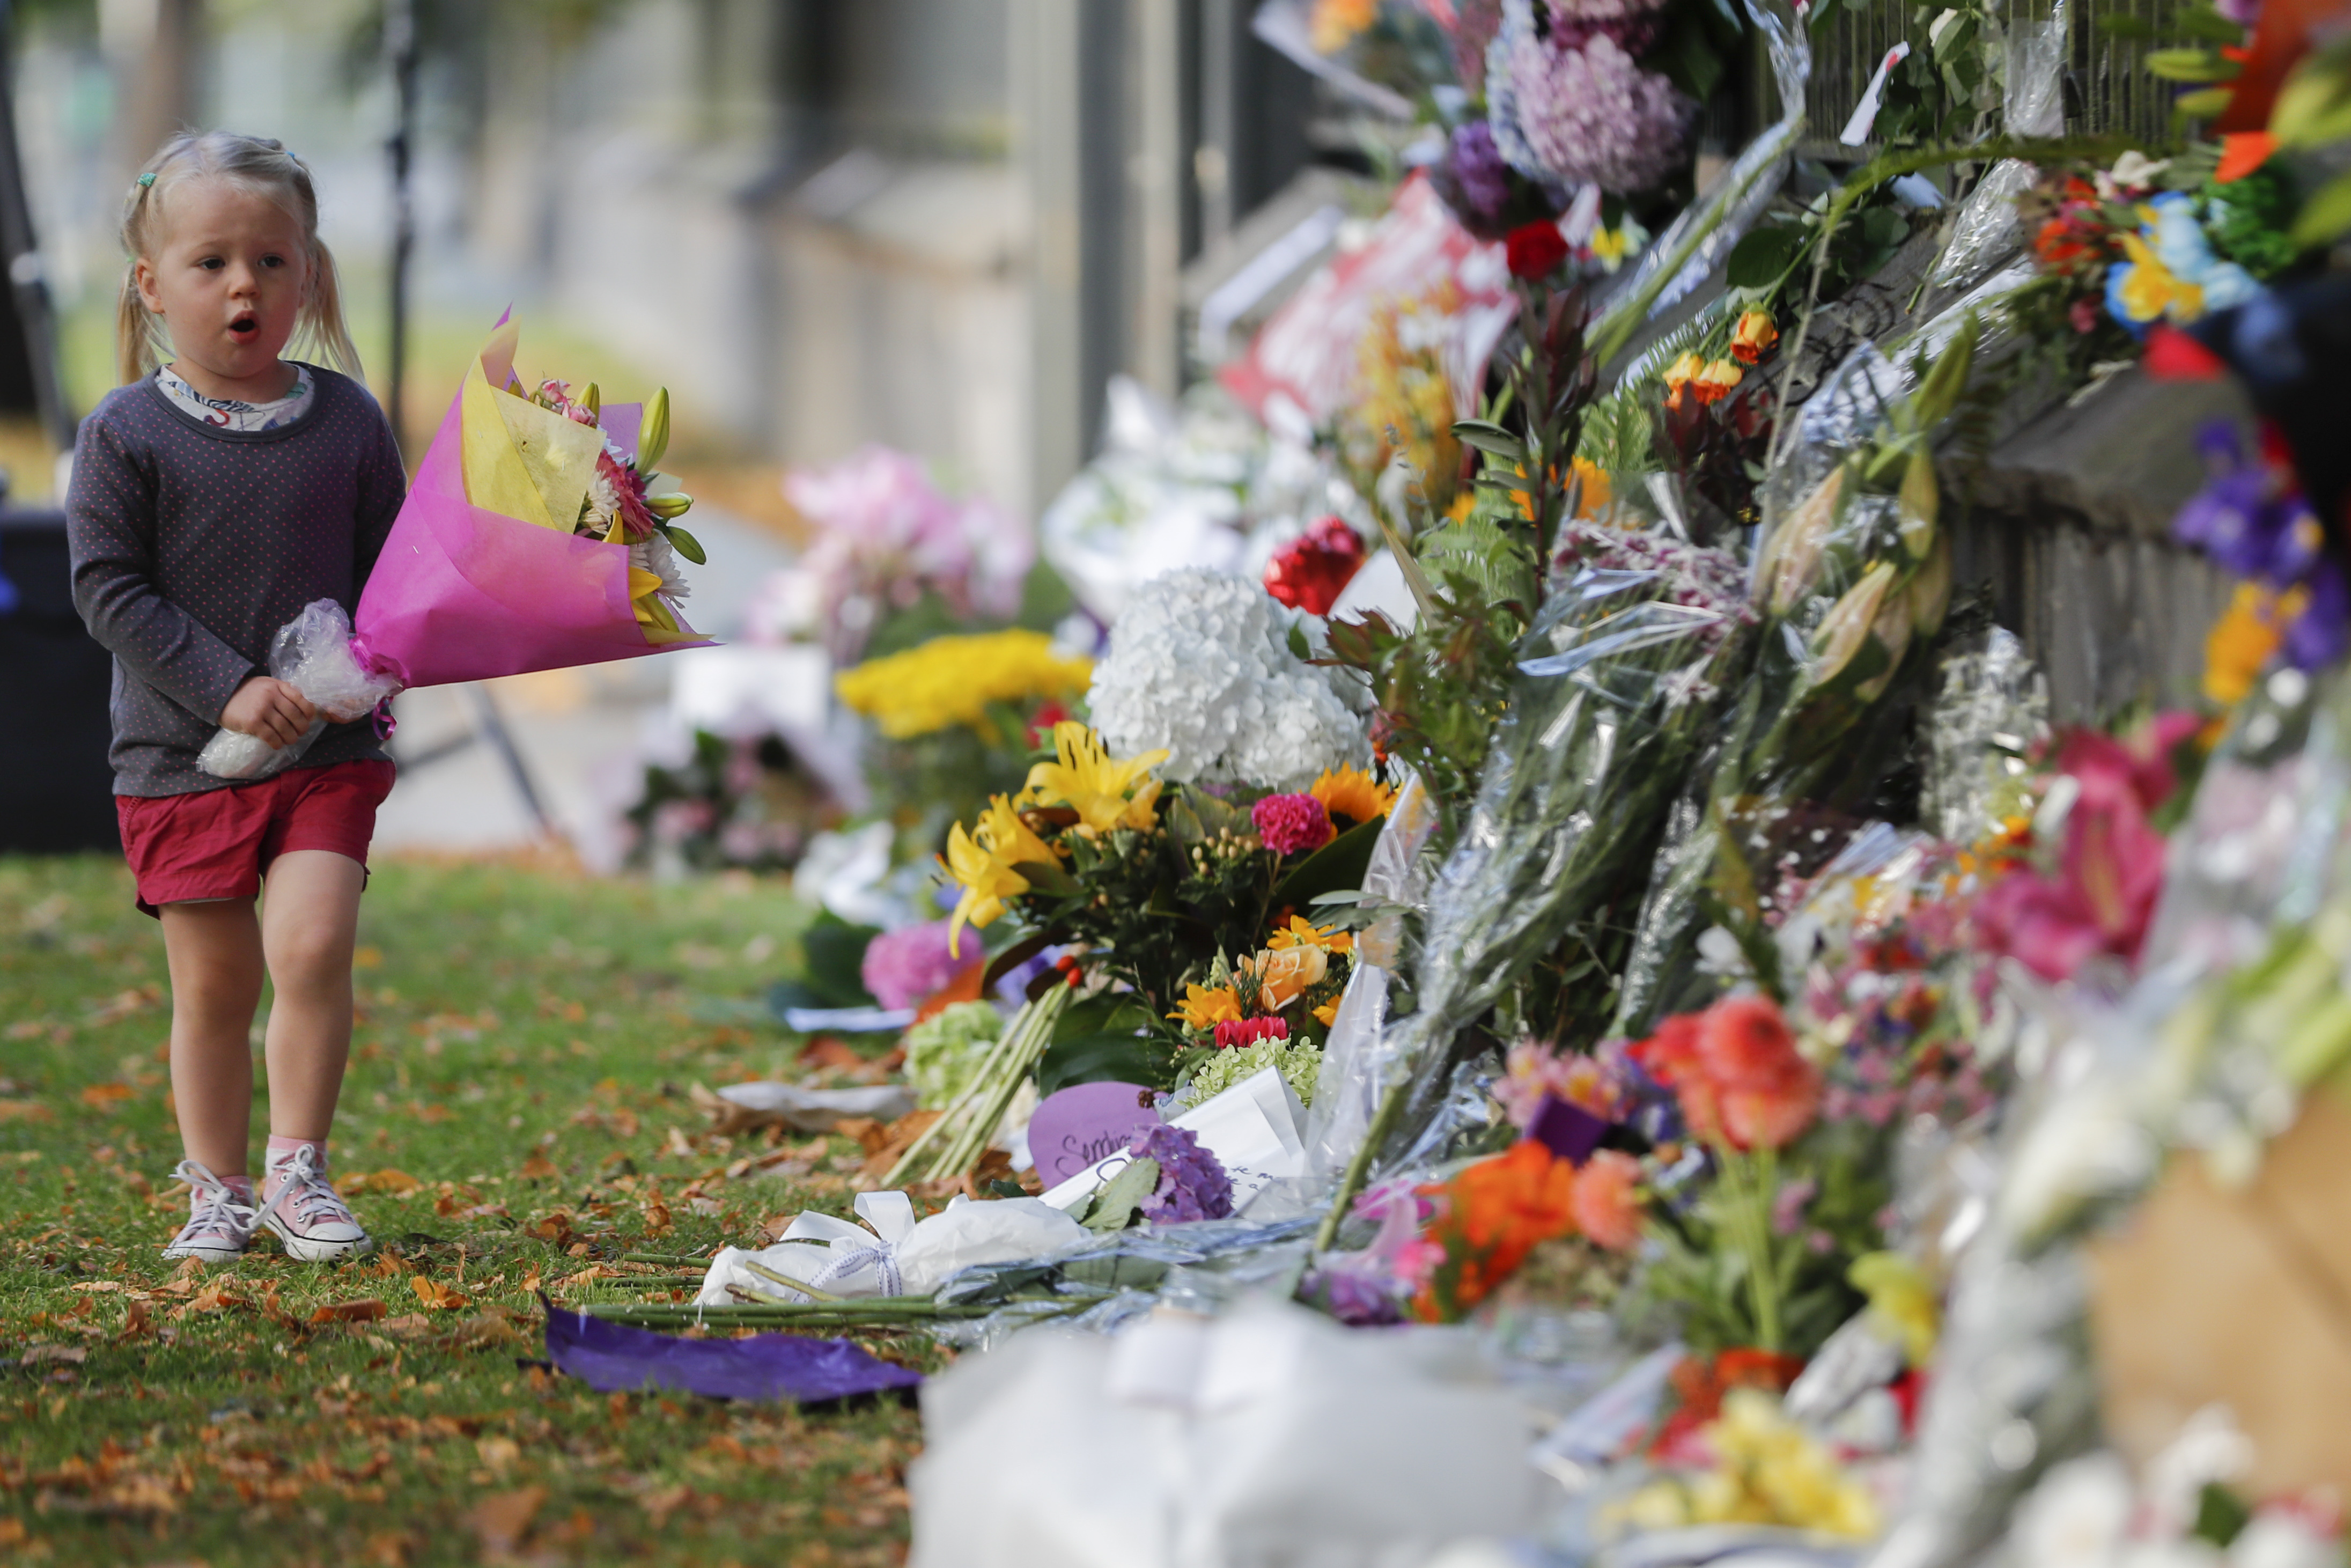 A child carries flowers to a memorial wall following the mosque shootings in Christchurch, New Zealand.